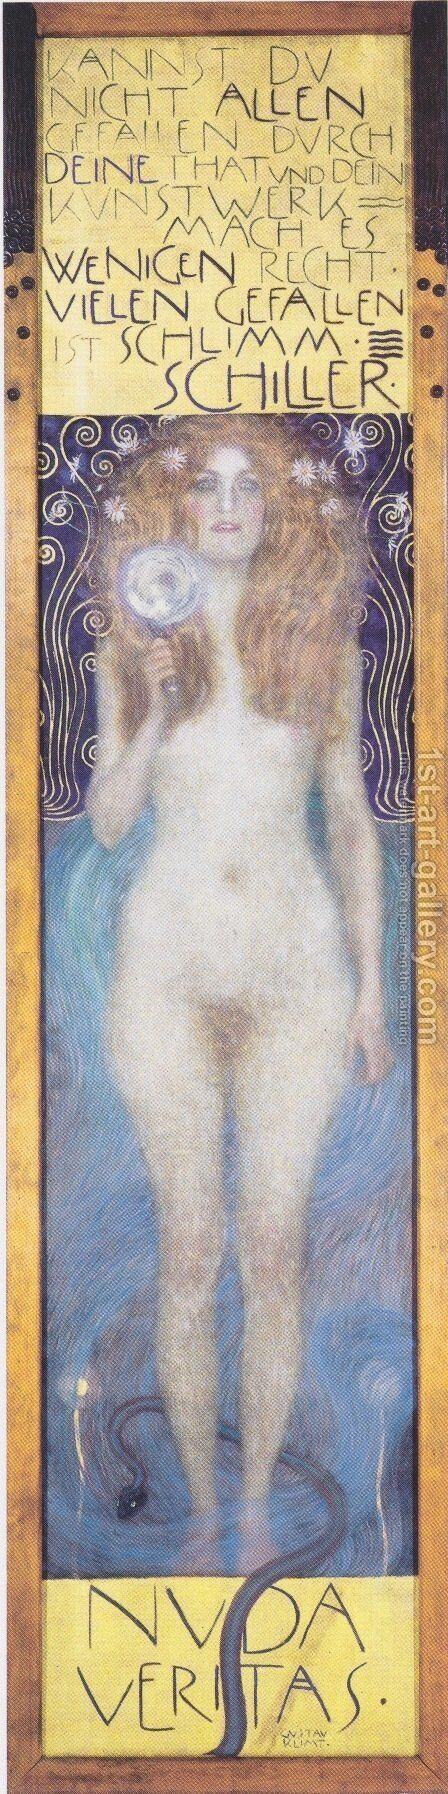 Nuda Veritas 2 by Gustav Klimt - Reproduction Oil Painting